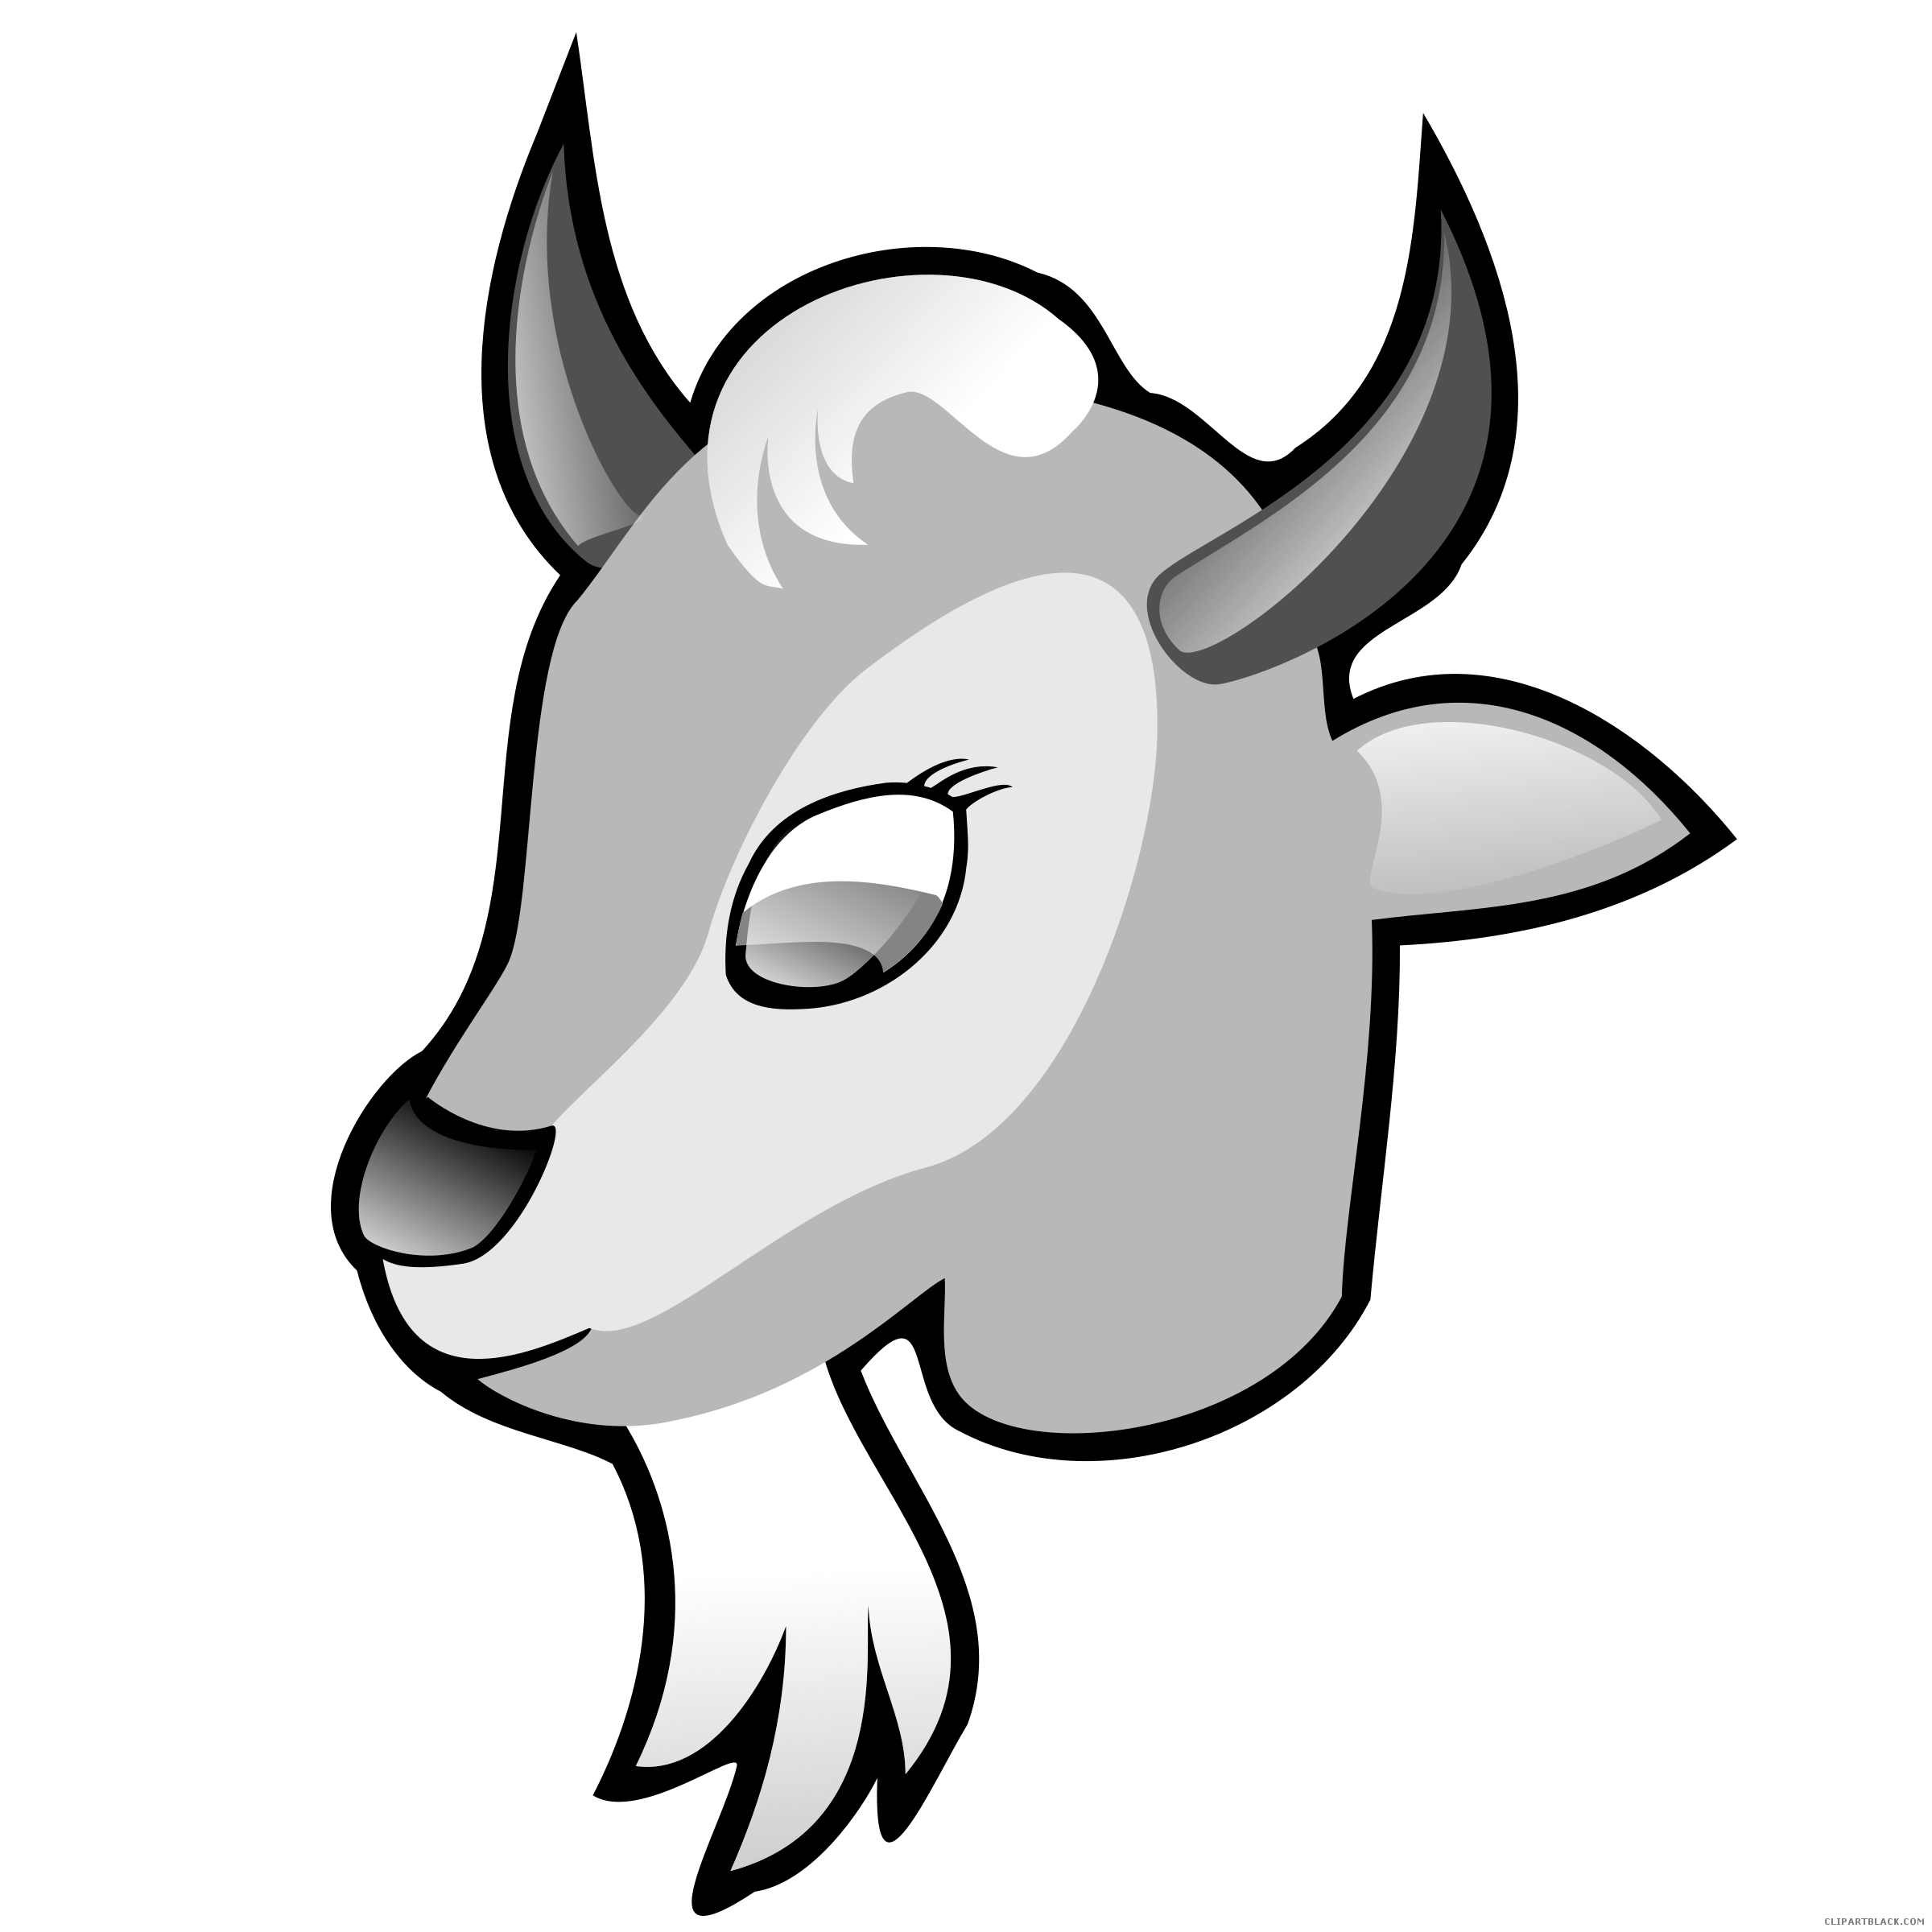 Goat clipart black and white. Page of clipartblack com